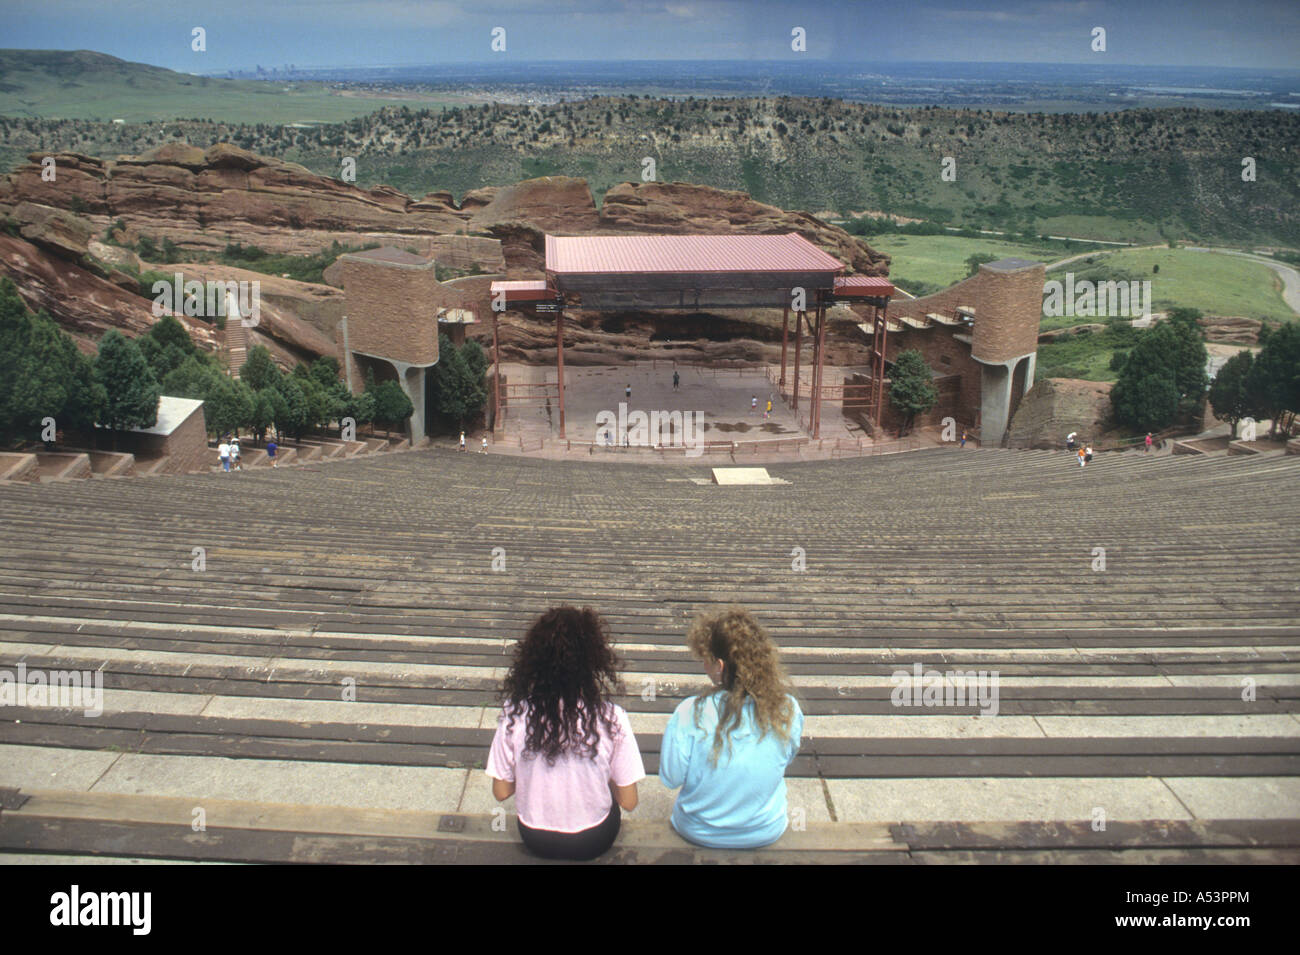 Red Rock Open Air Amphitheatre In Colorado USA. - Stock Image